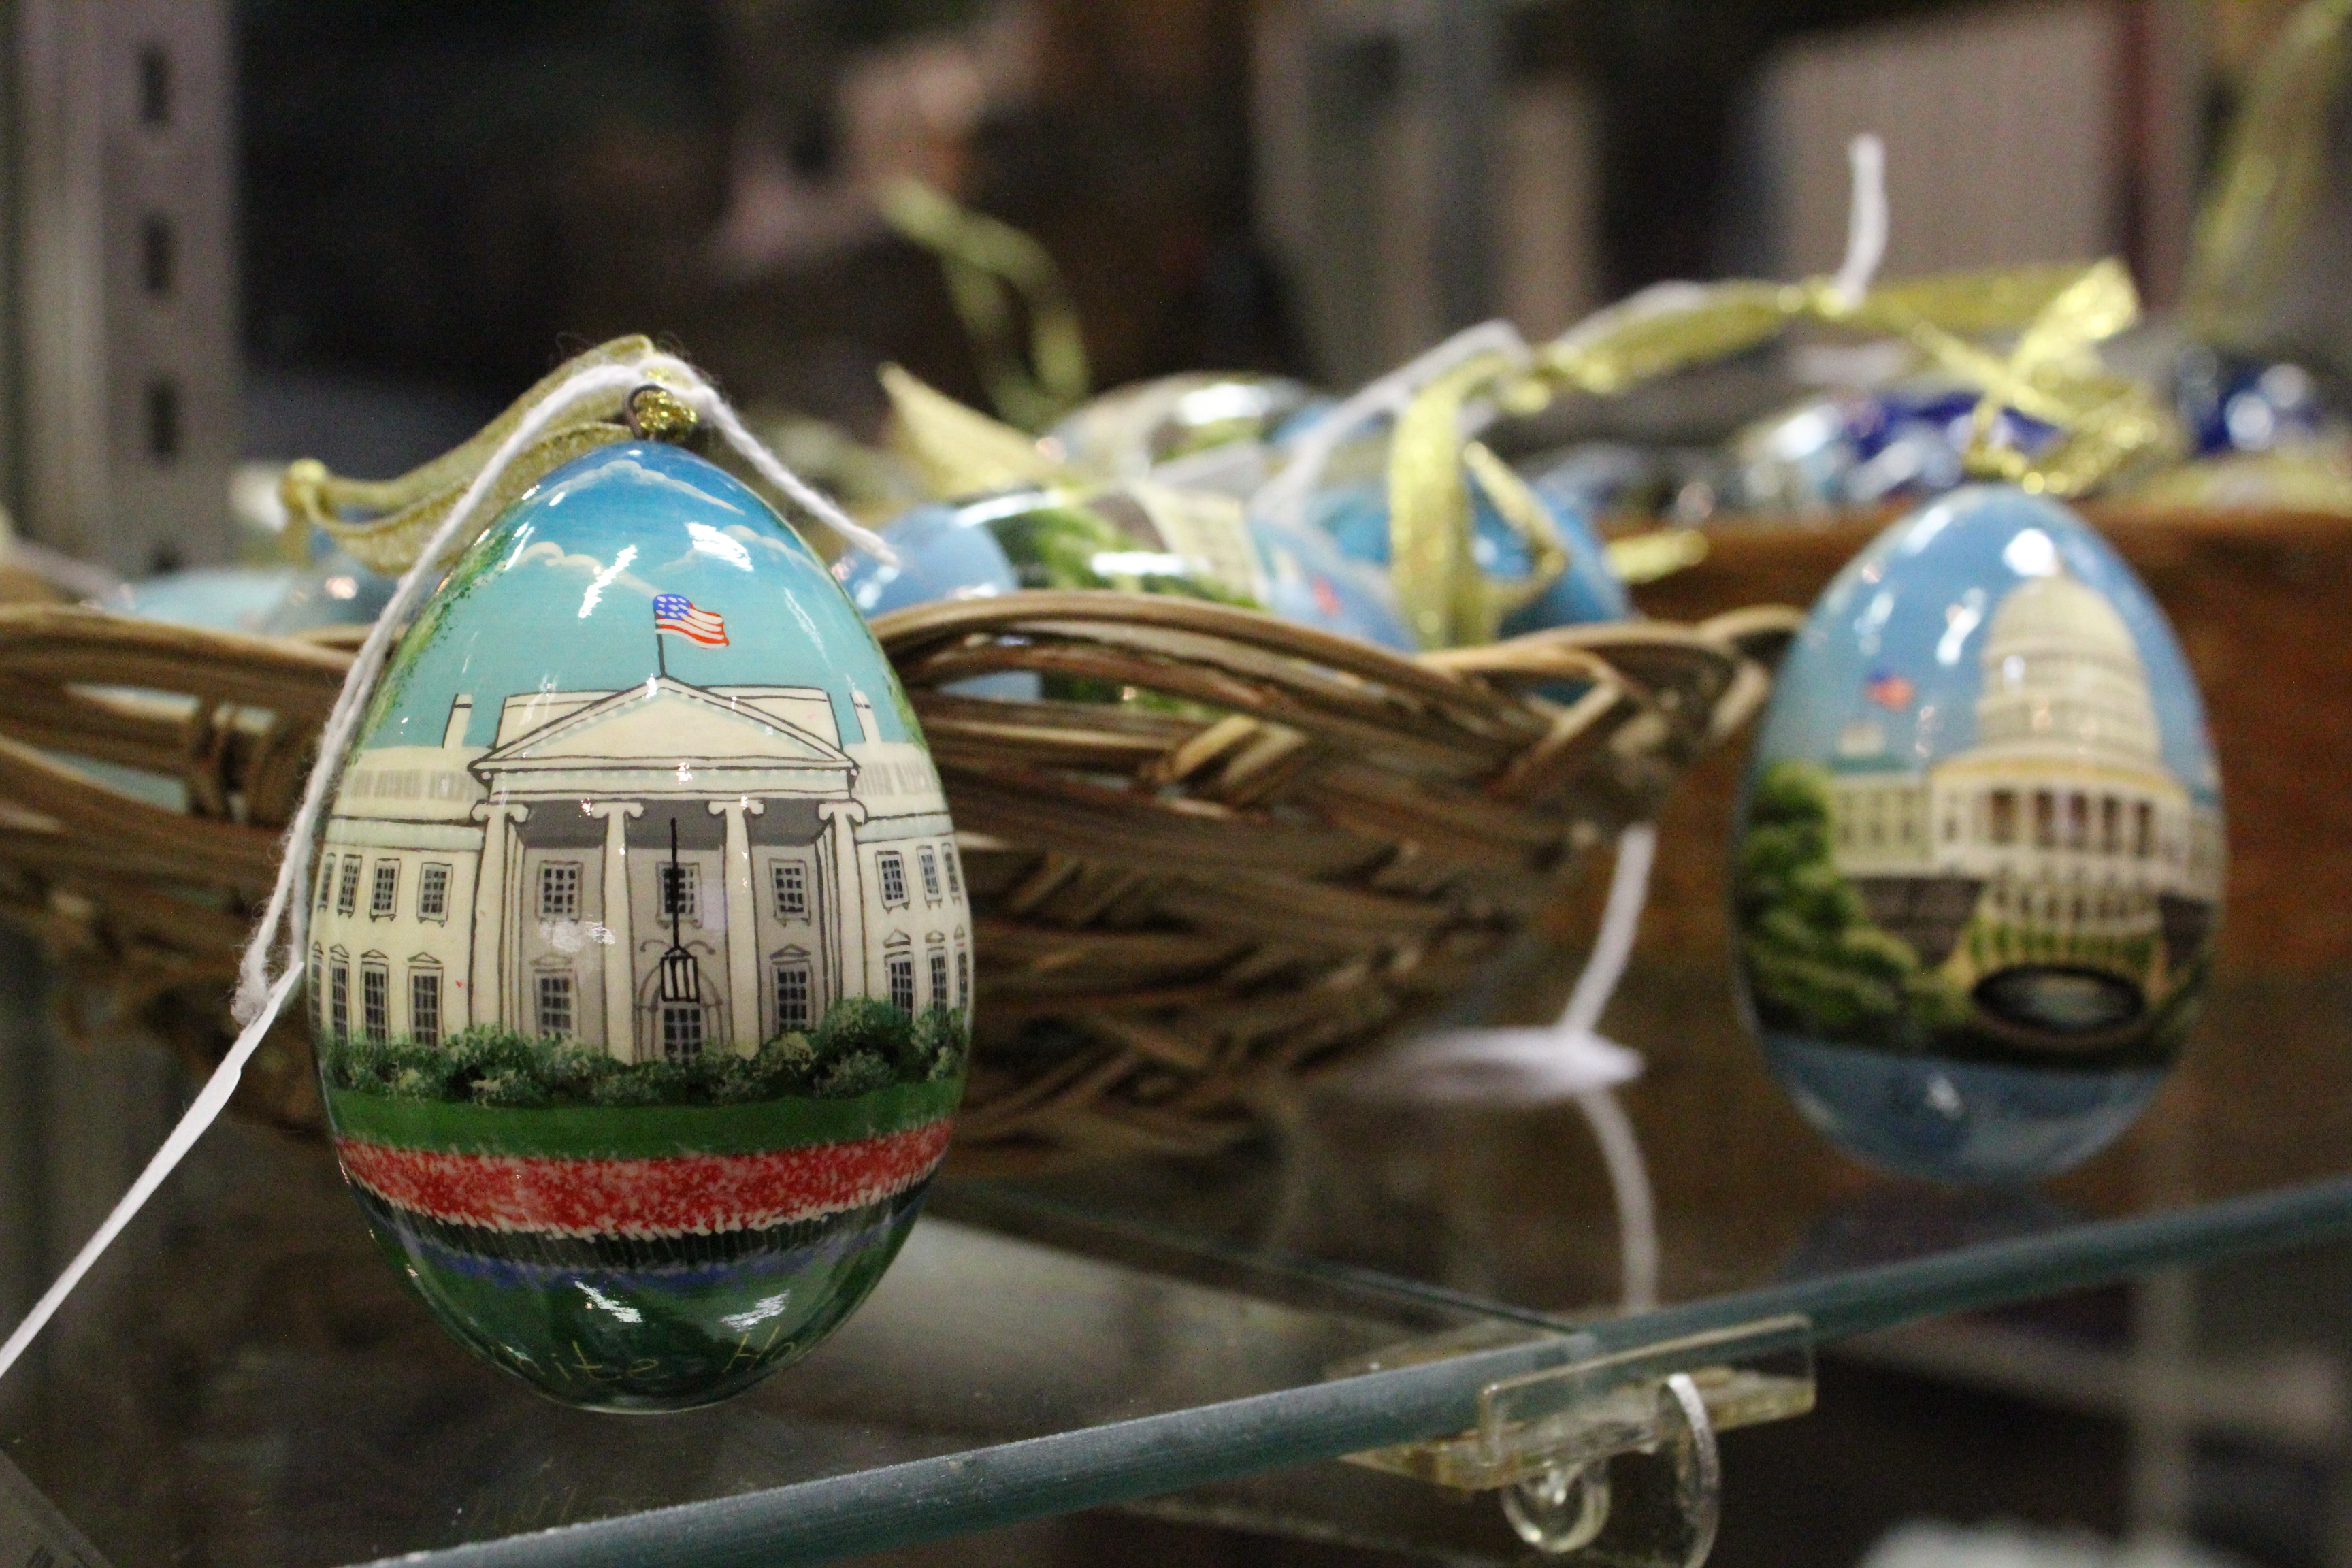 Eggs painted with images of Washington D.C.